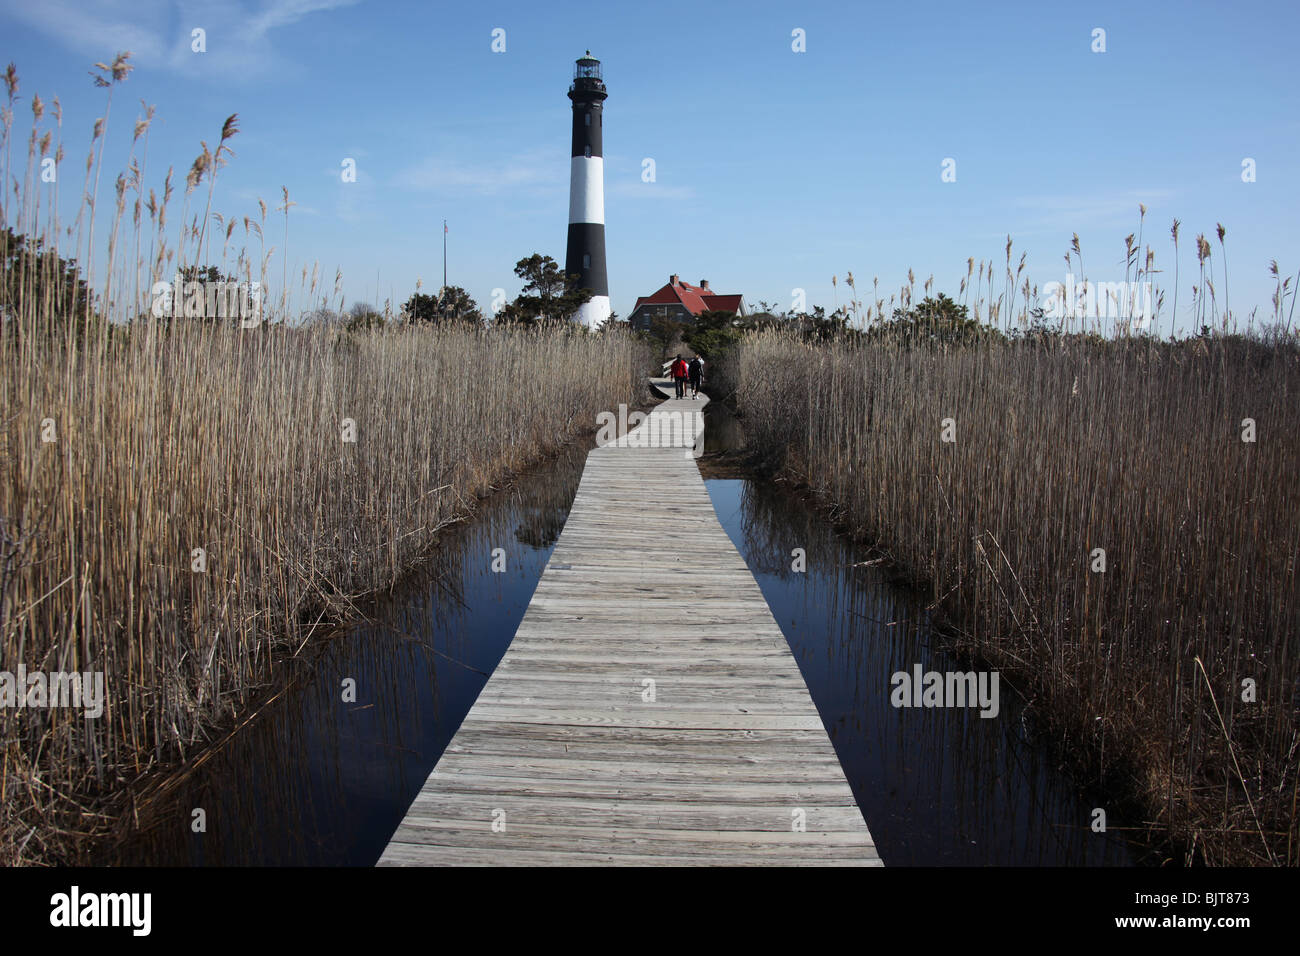 Boardwalk Through Marshlands To The Fire Island Lighthouse Robert Moses State Park New York C Katharine Andriotis